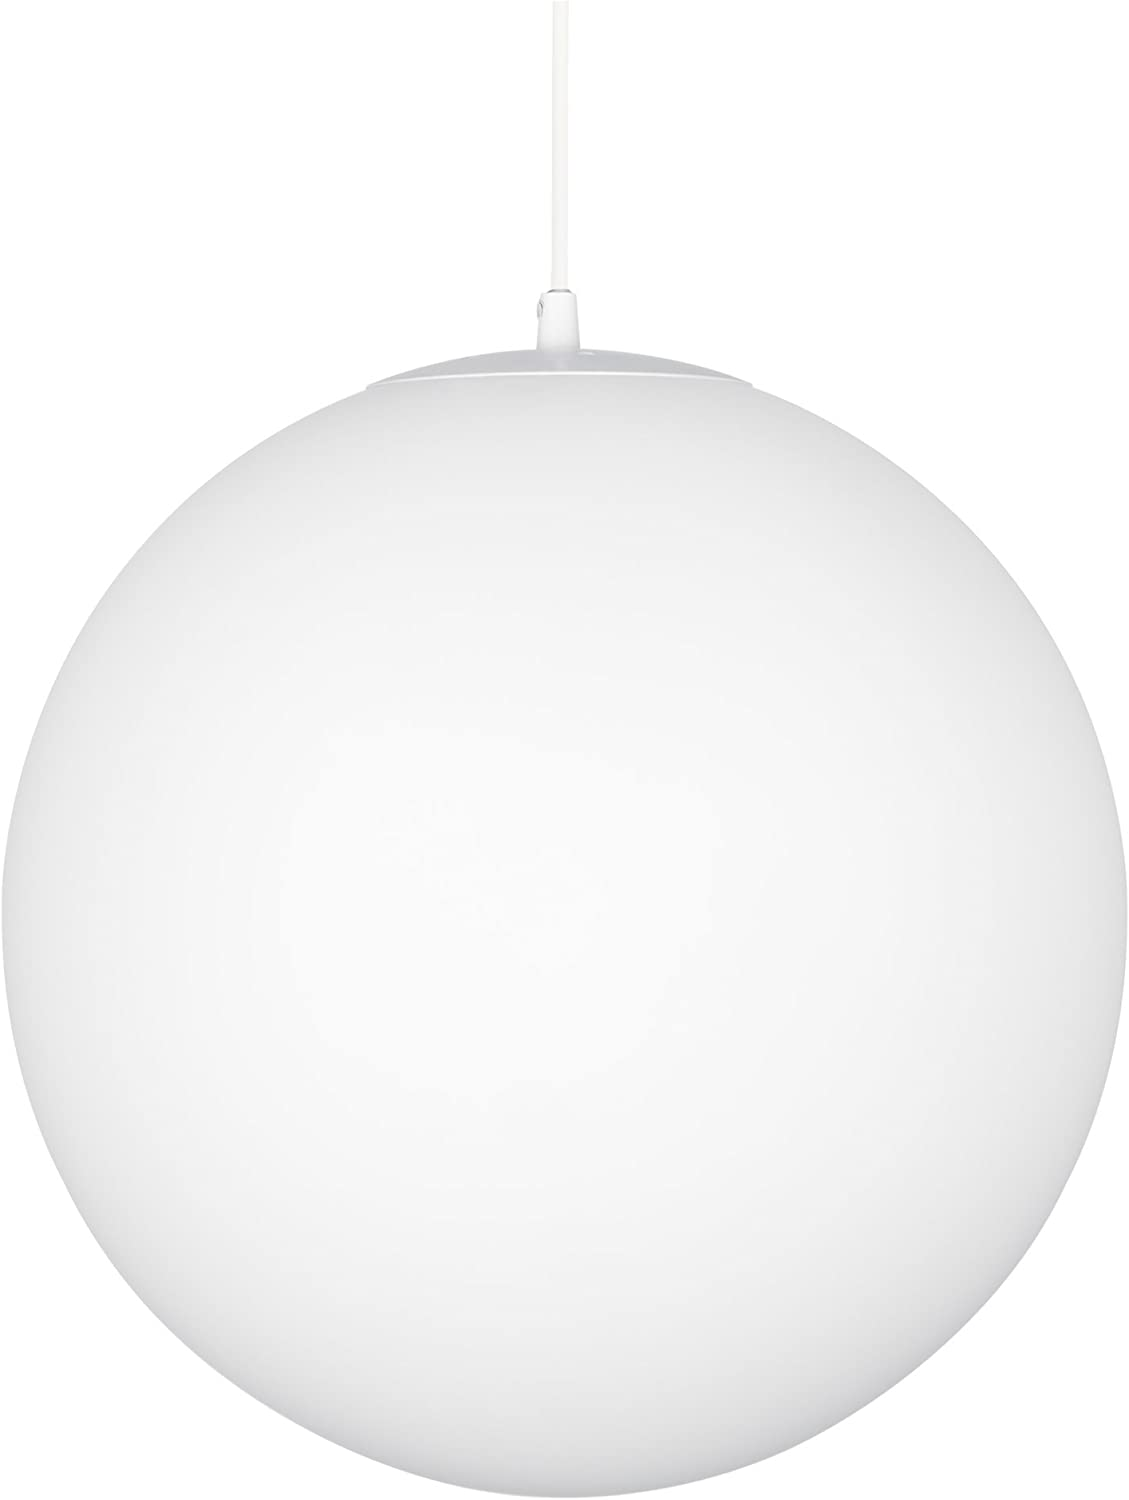 Kira Home Ceres 14 Mid-Century Modern Hanging Orb Pendant Light with Smooth Matte White Frosted Diffuser, White Finish